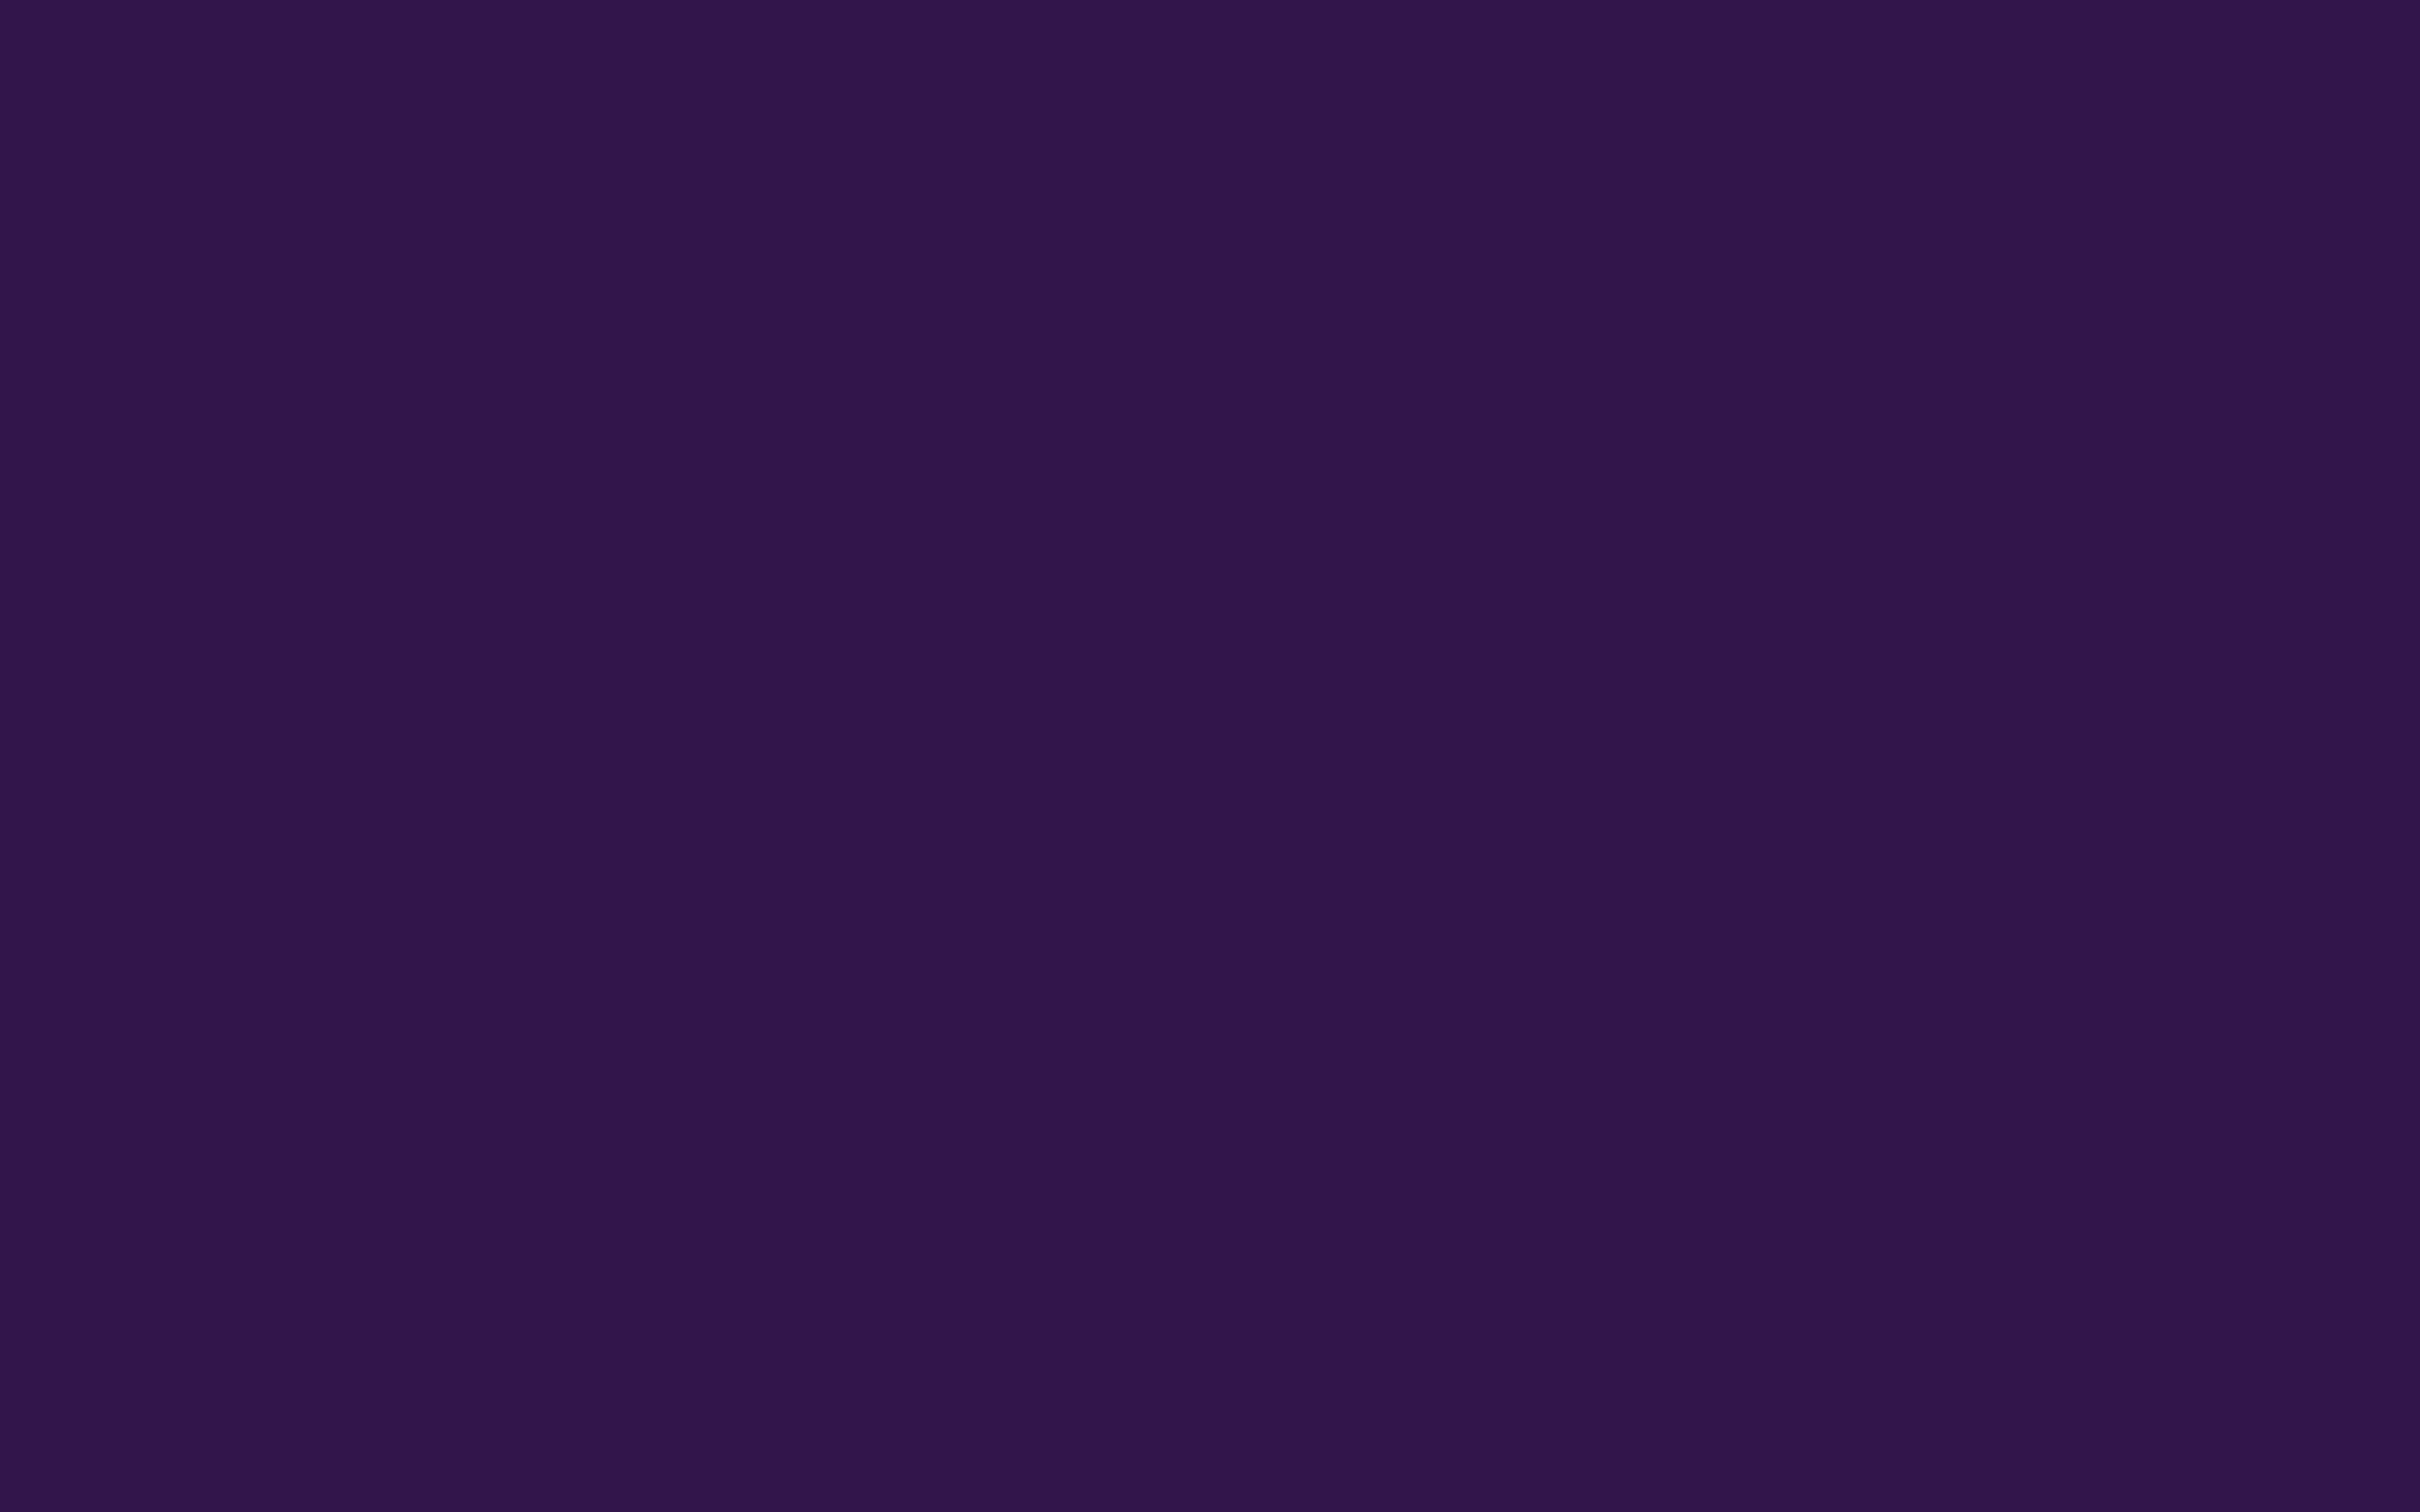 2560x1600 Russian Violet Solid Color Background